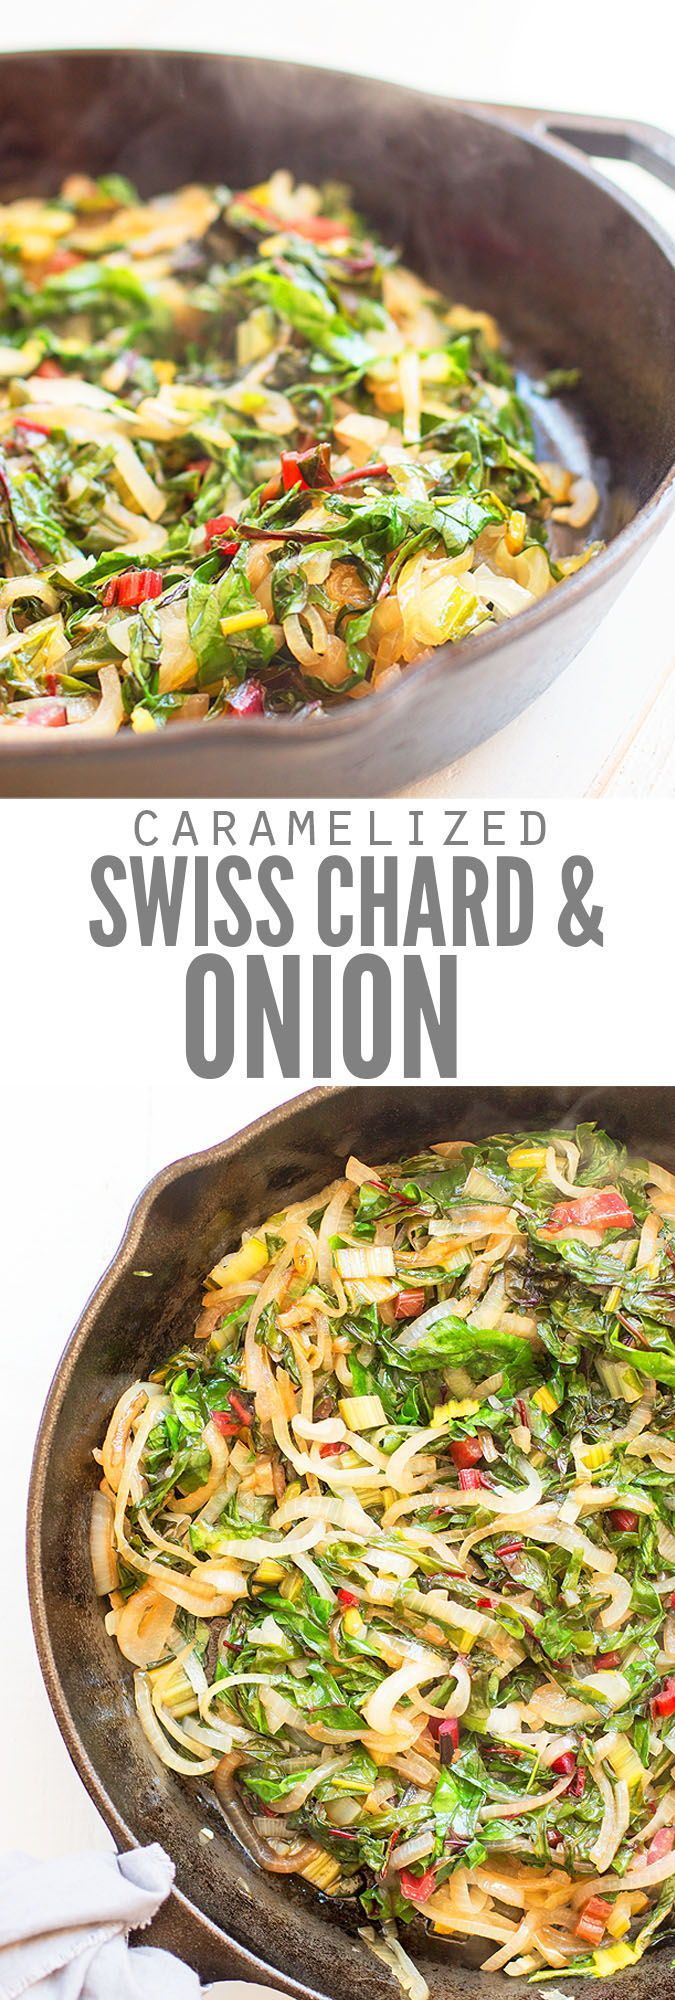 Onions Swiss Chard This caramelized onions and Swiss chard recipe is my husband's all-time favorite. We use either rainbow or red chard and sometimes add peppers too. It's super healthy and can easily be made vegan! A perfect dish in the summer, or all year long! Move over Jamie Oliver, this is a tough one to beat! :: This caram...